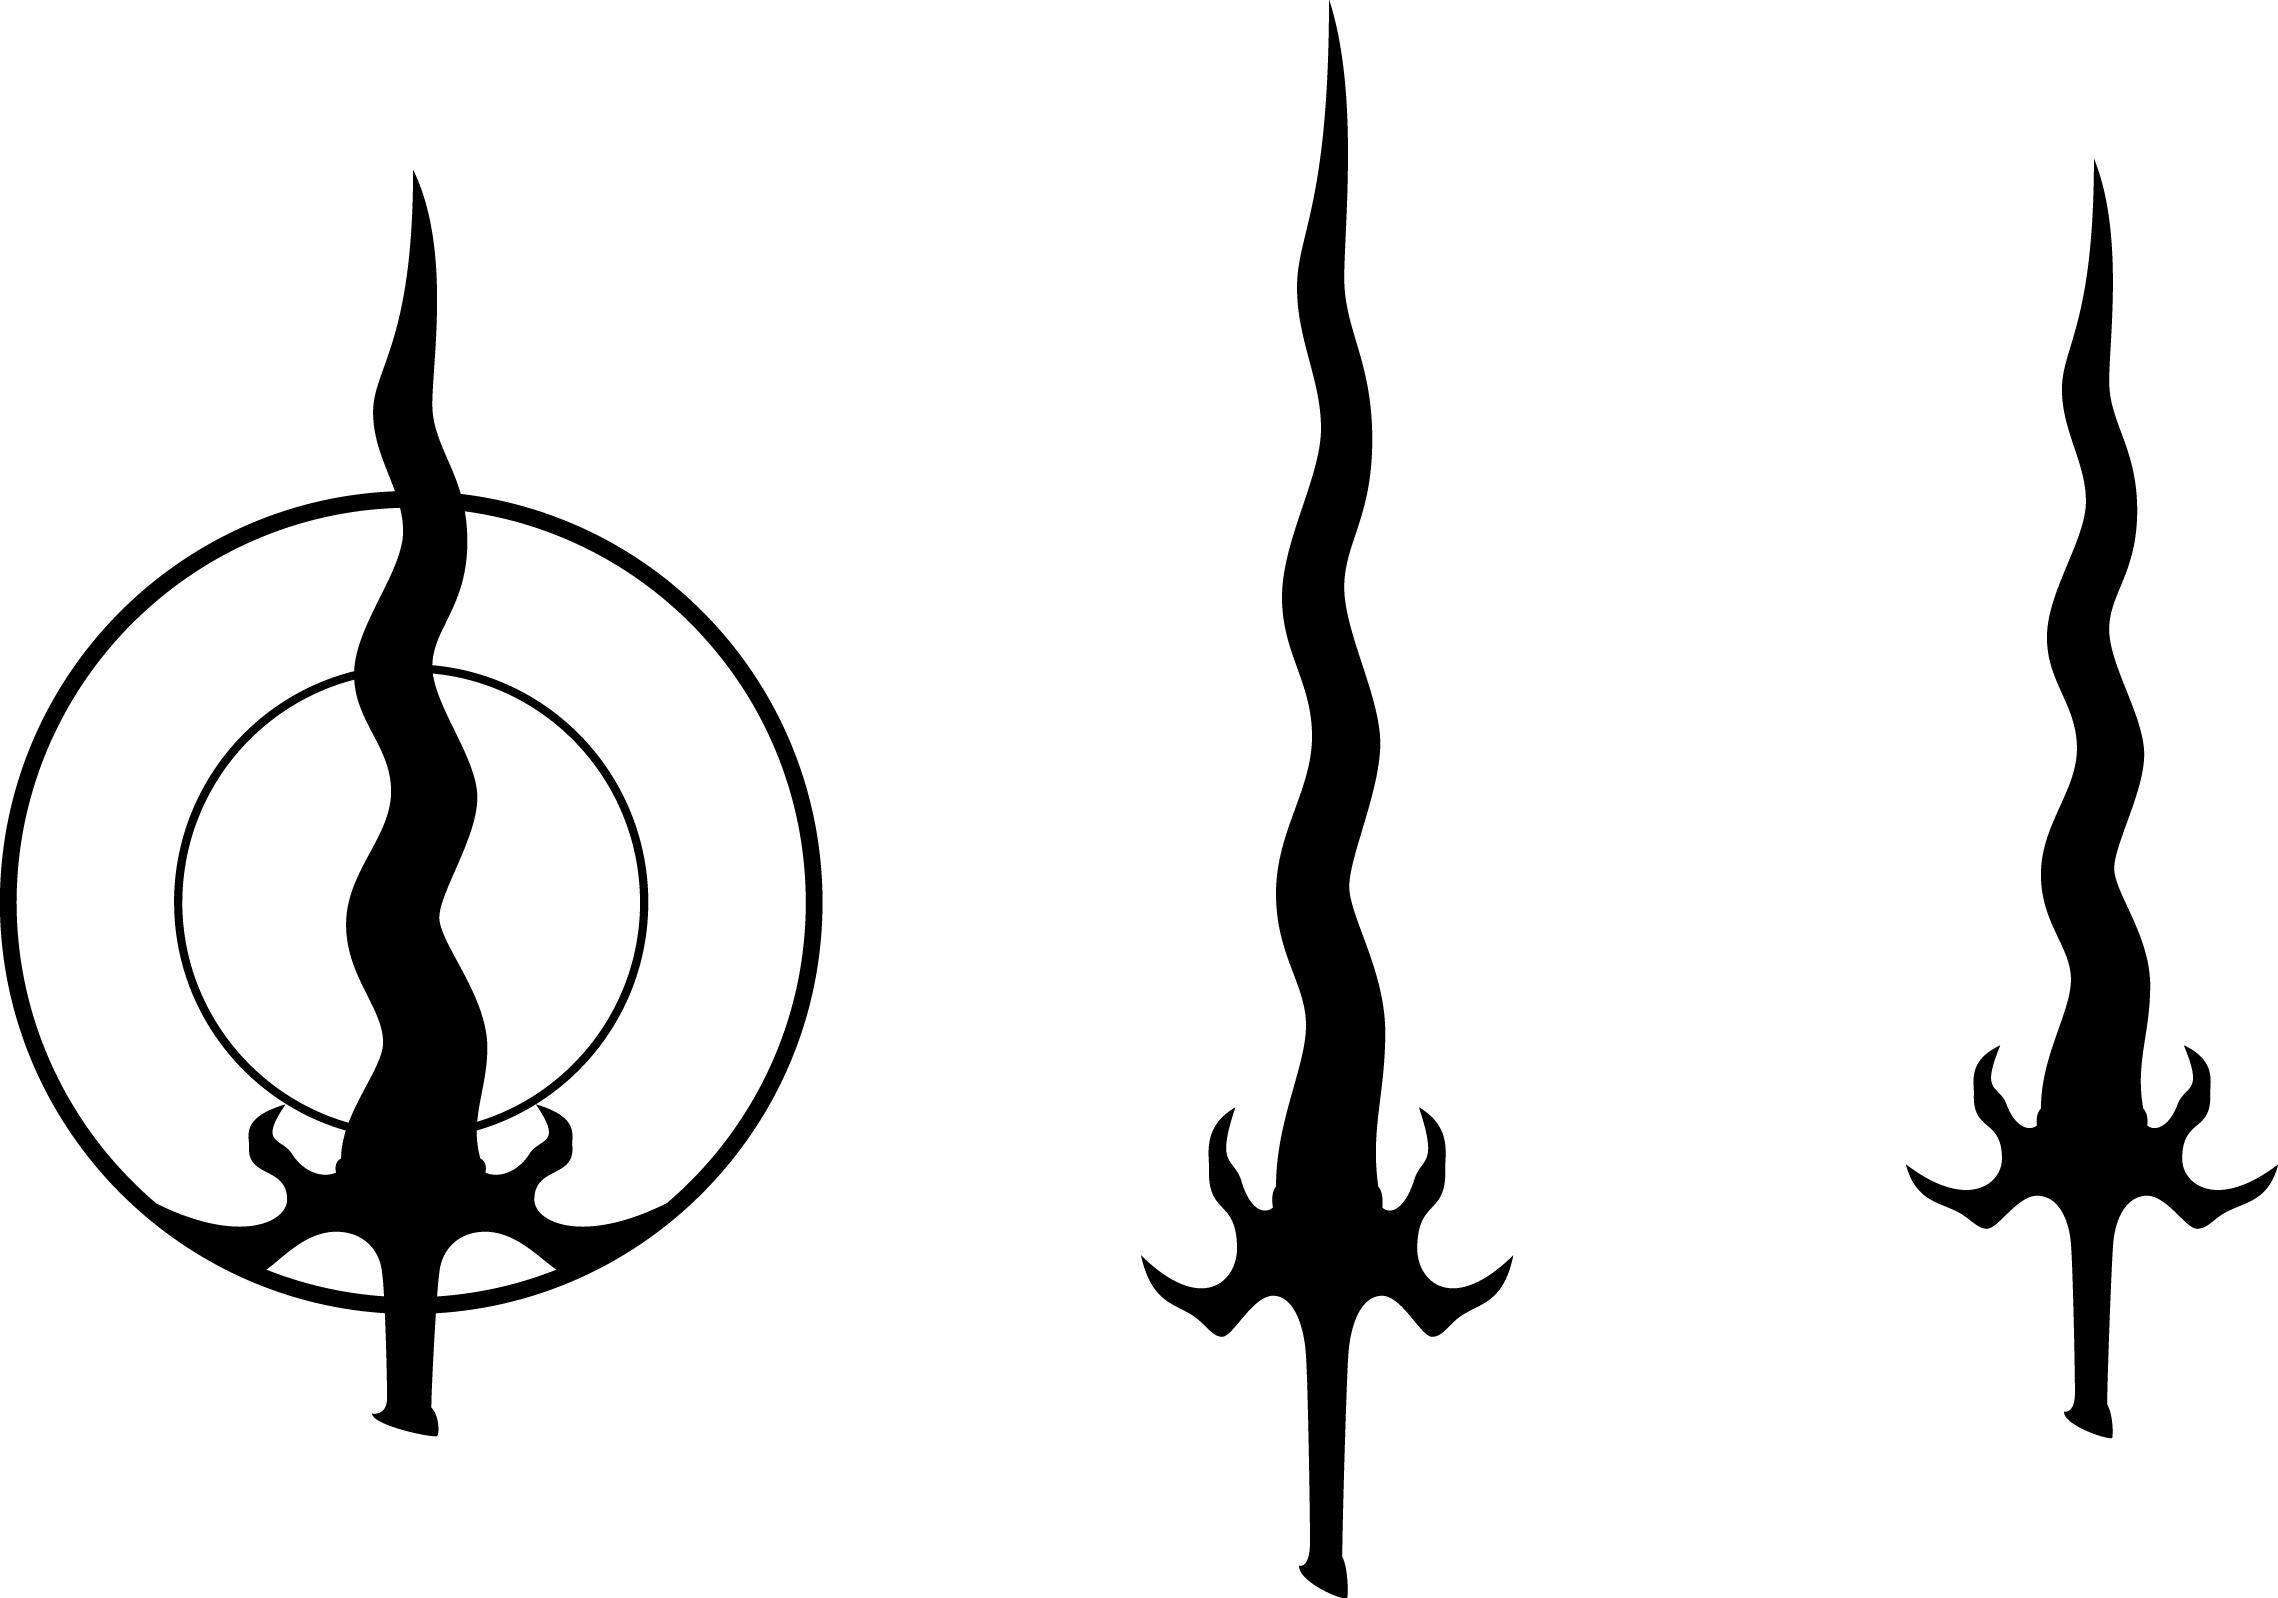 Defiance-Fankit-Symbol-Others-ReaverOutlines.jpg